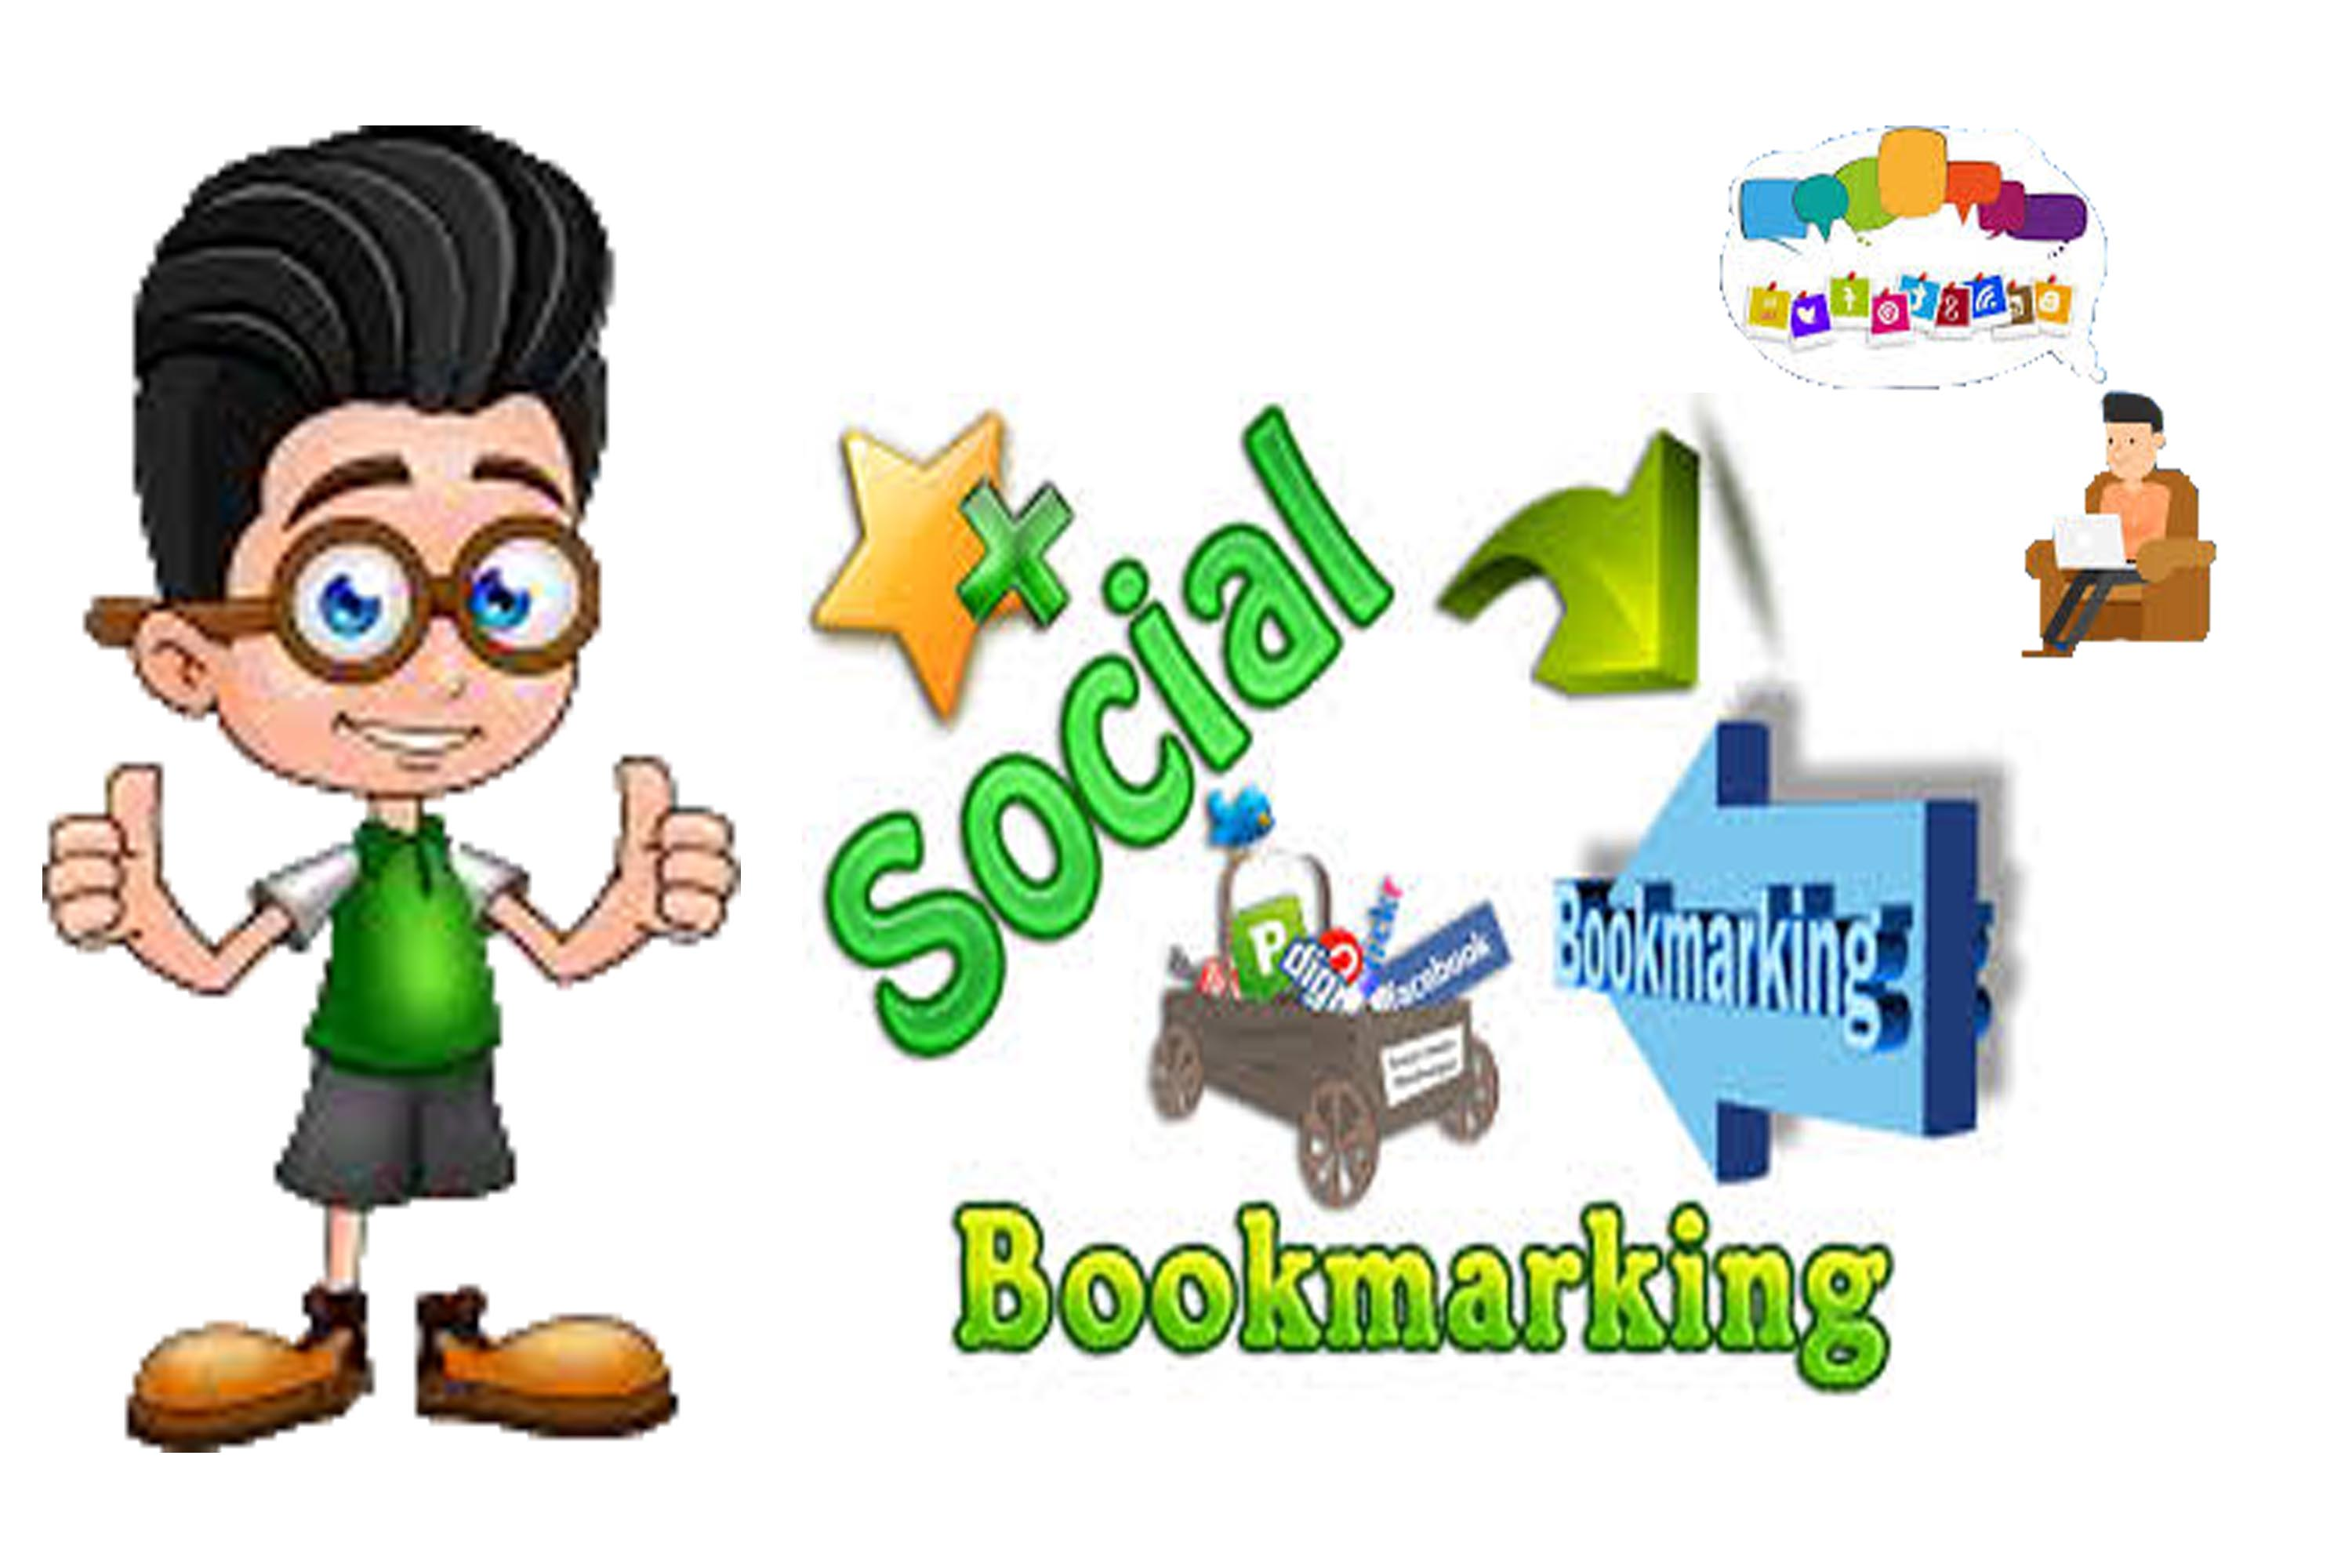 Manually Build 100 High quality Social Bookmarking Backlinks for Your Site